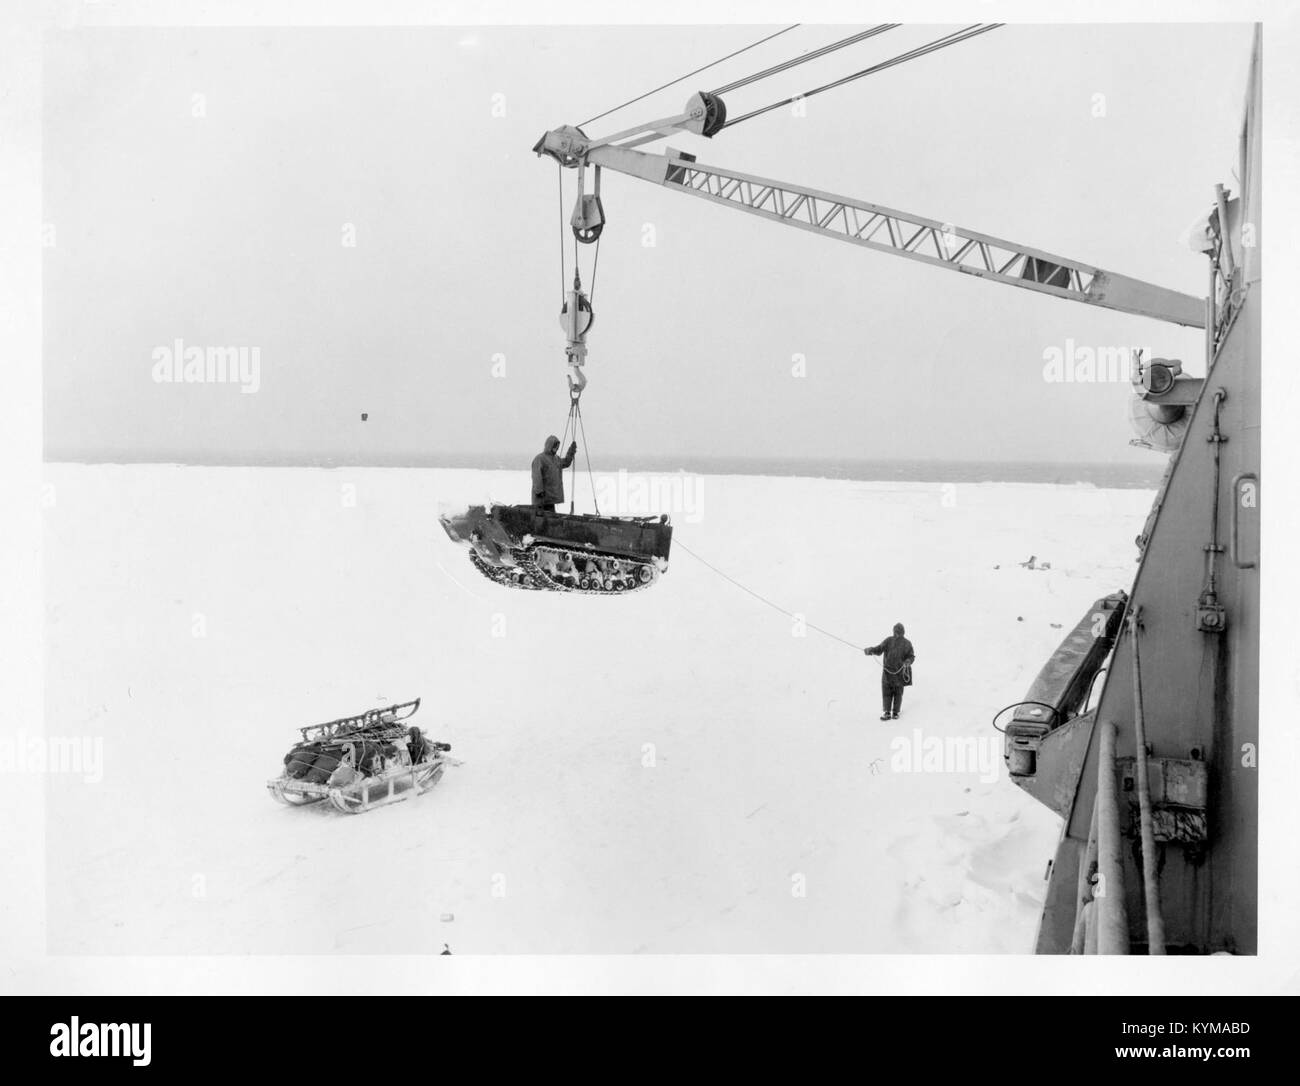 Operation Windmill Expedition Members Unloading Equipment 5243855016 o - Stock Image